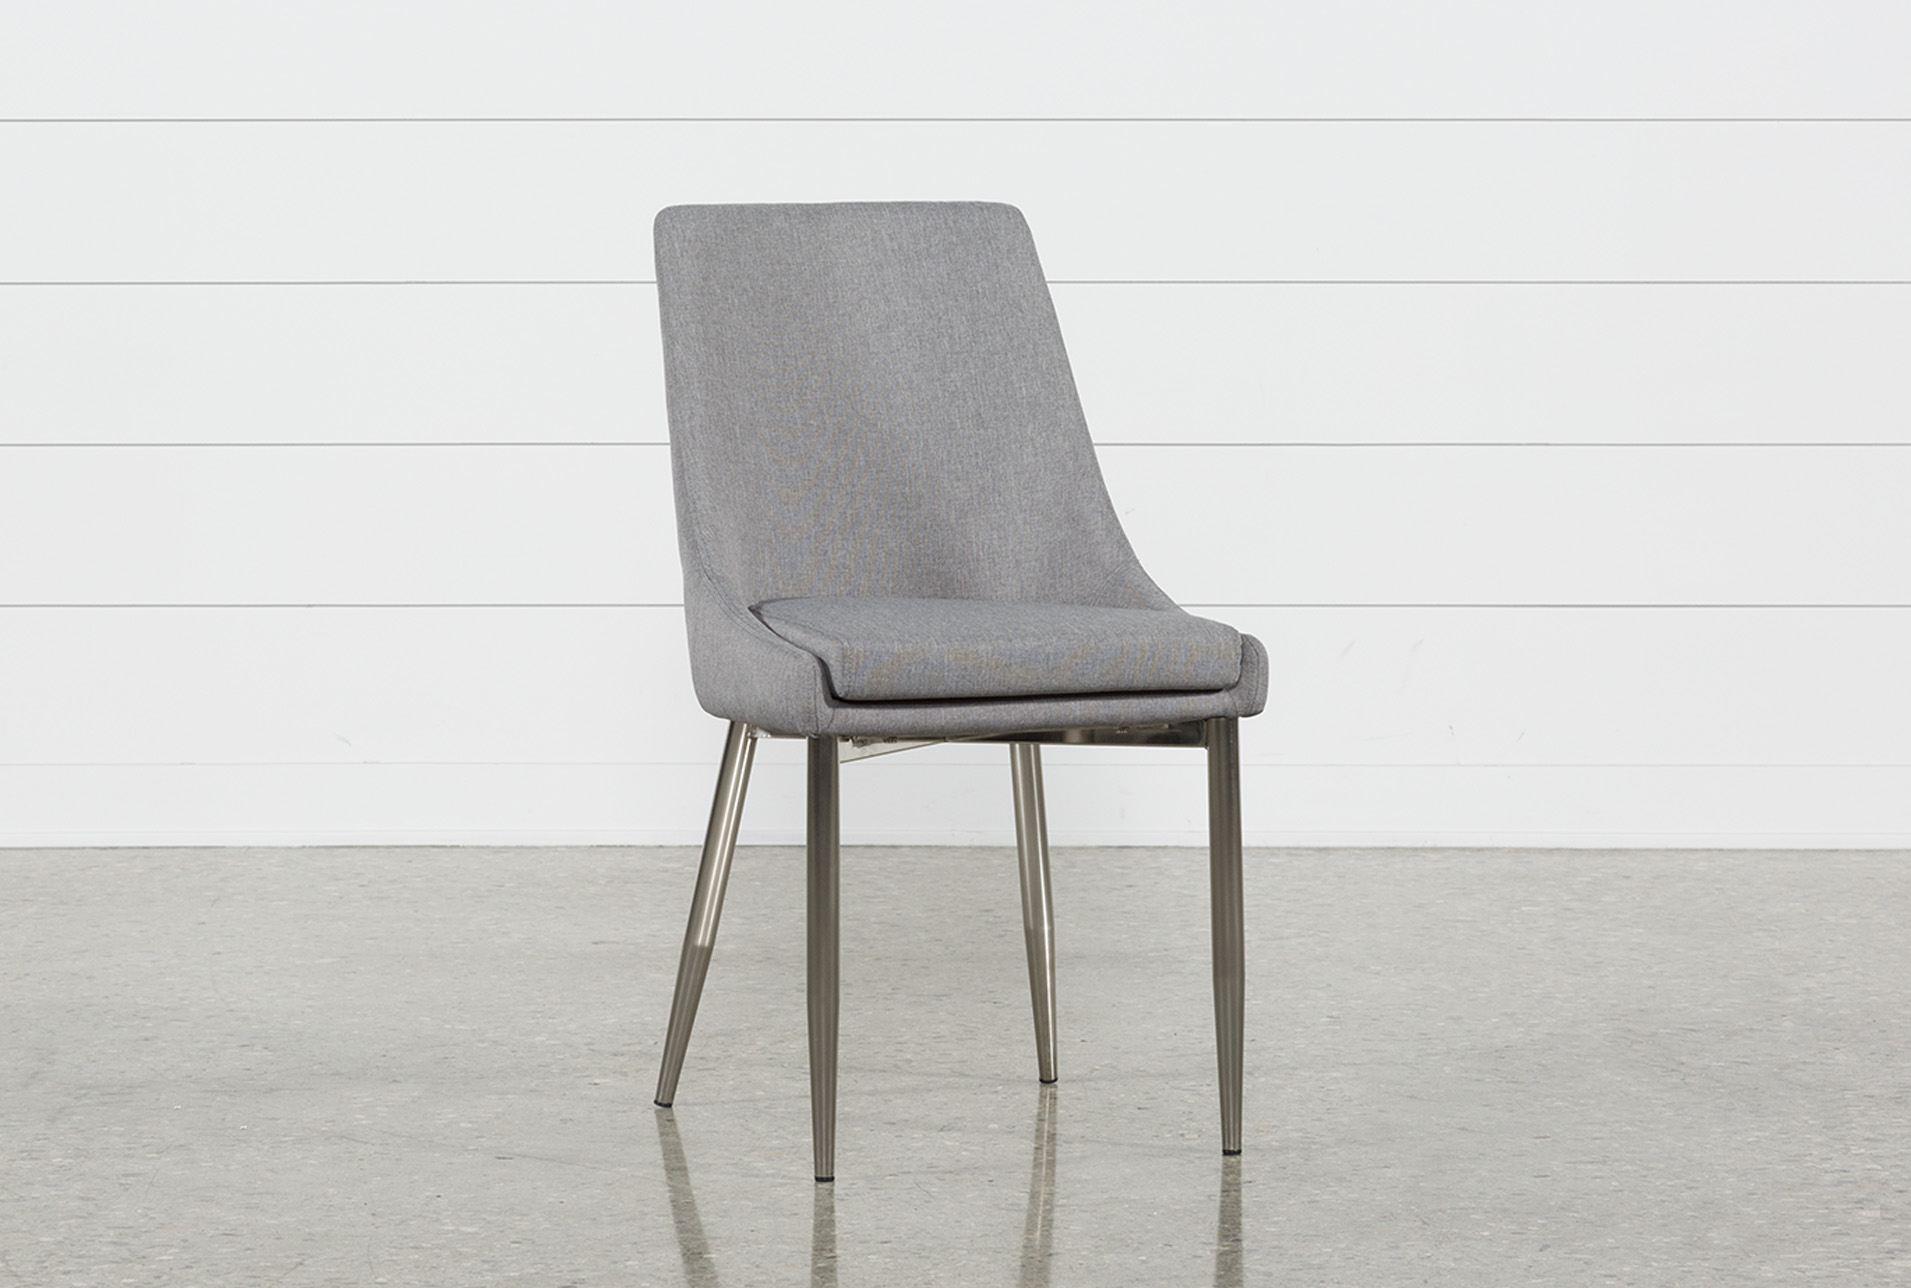 Charmant Bowery II Side Chair (Qty: 1) Has Been Successfully Added To Your Cart.